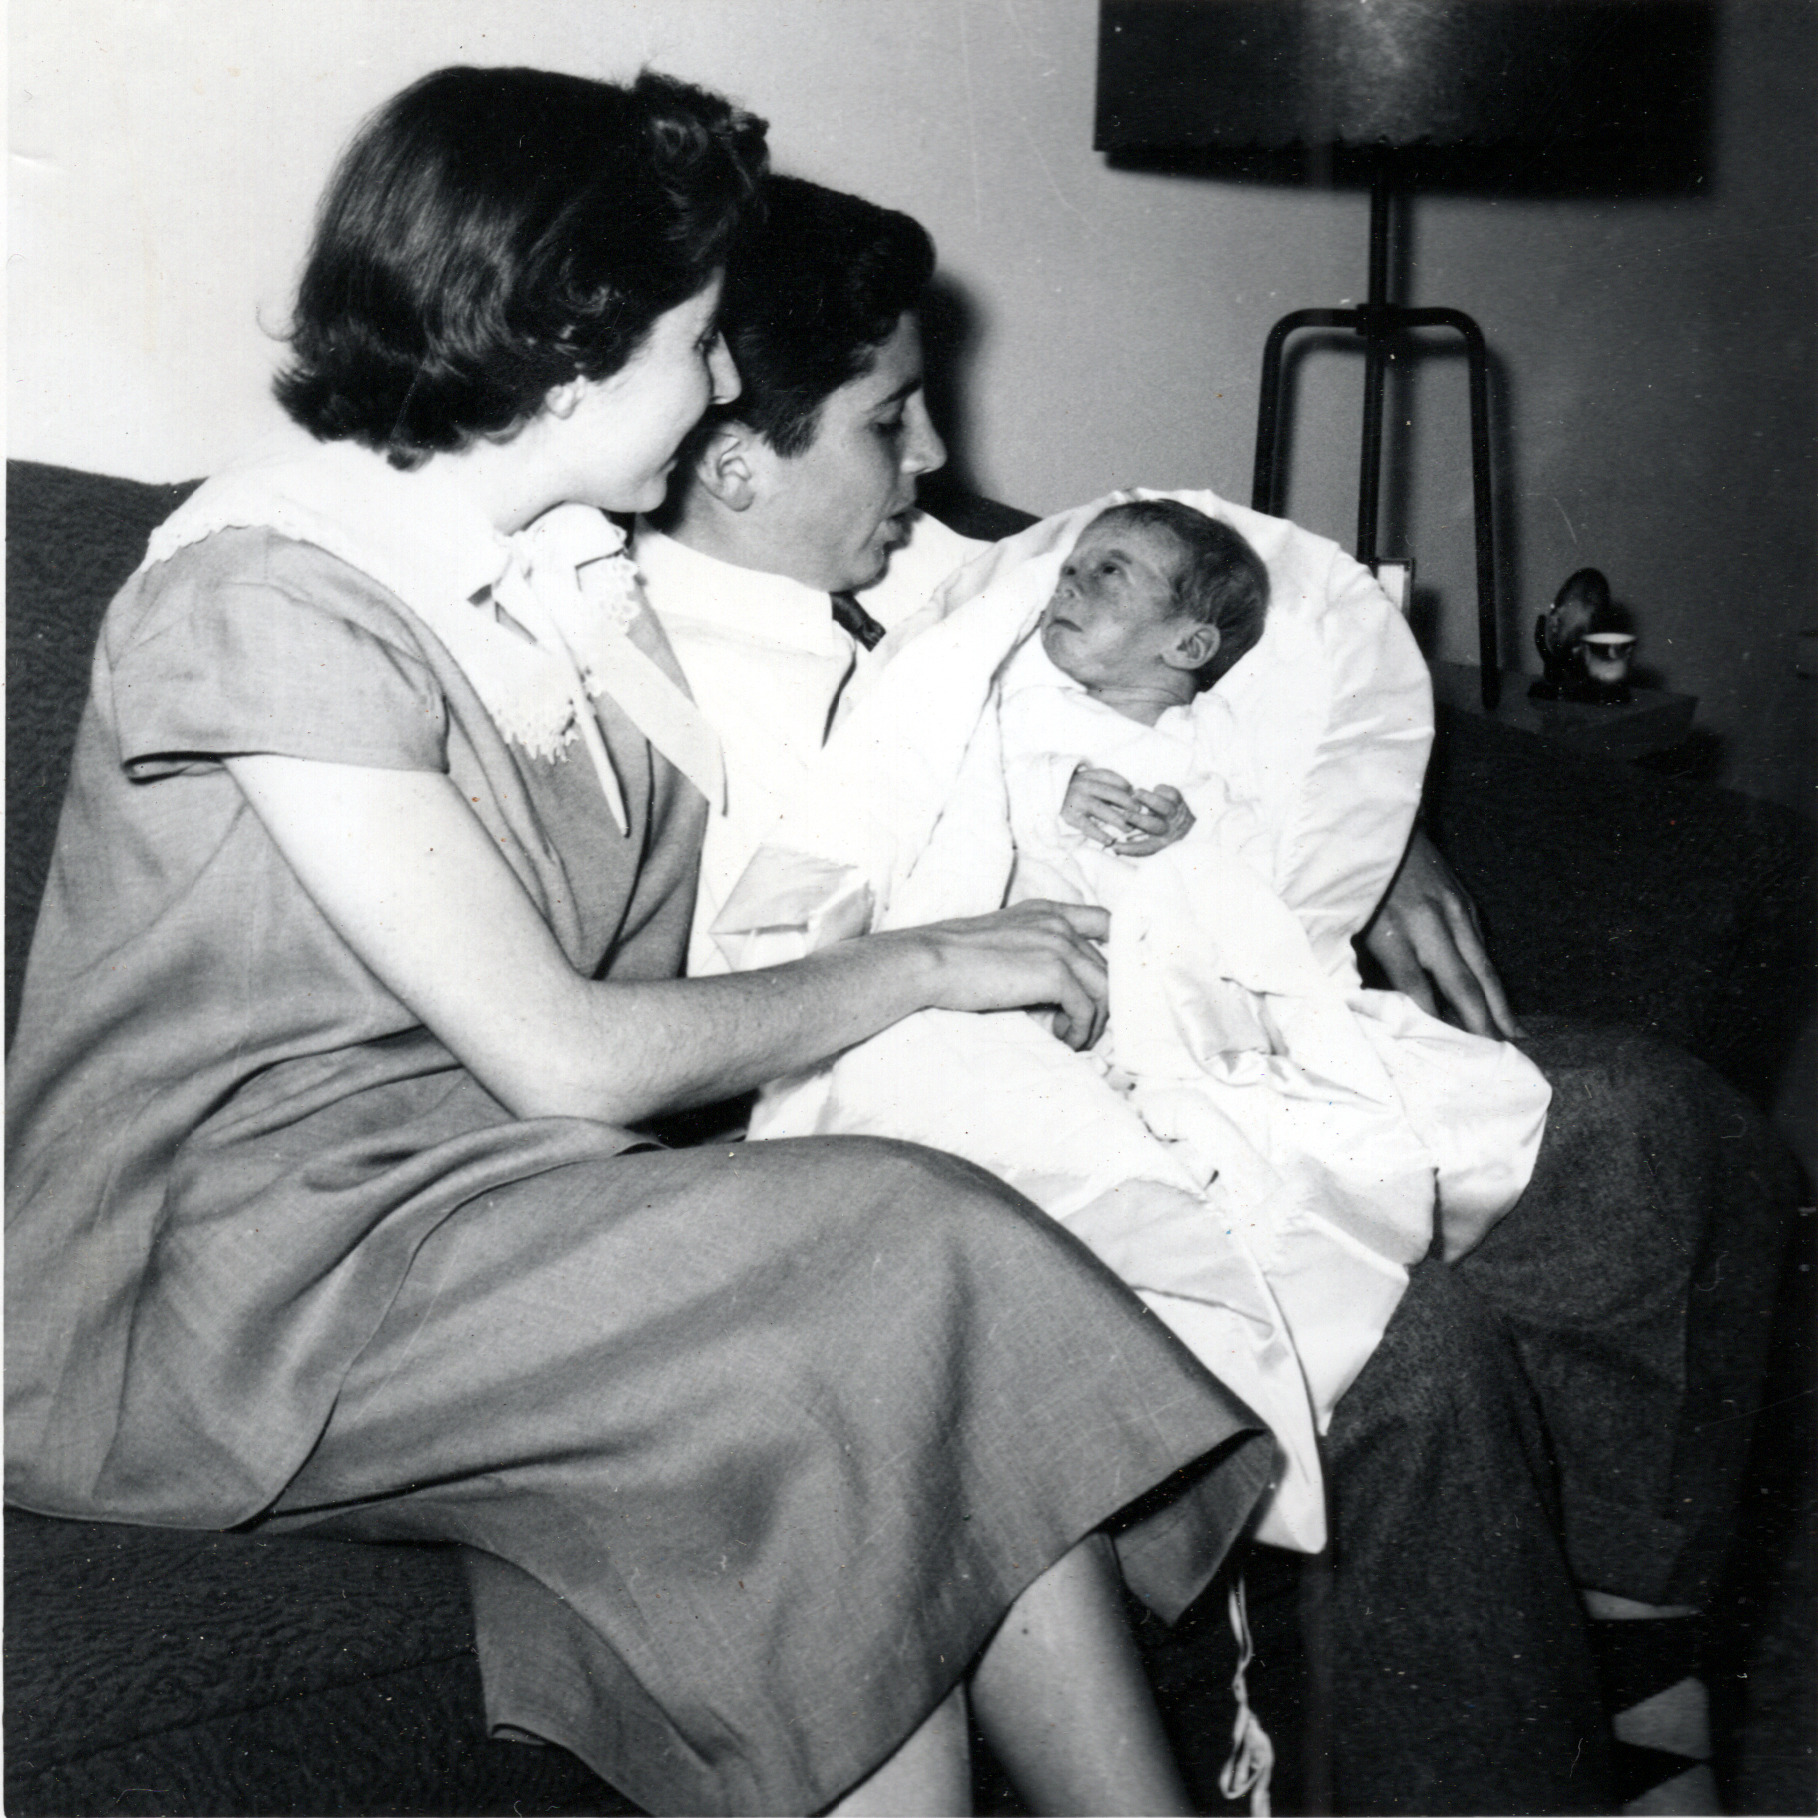 Buddy's Baptism - Shirley, Mike & Buddy - March 1956